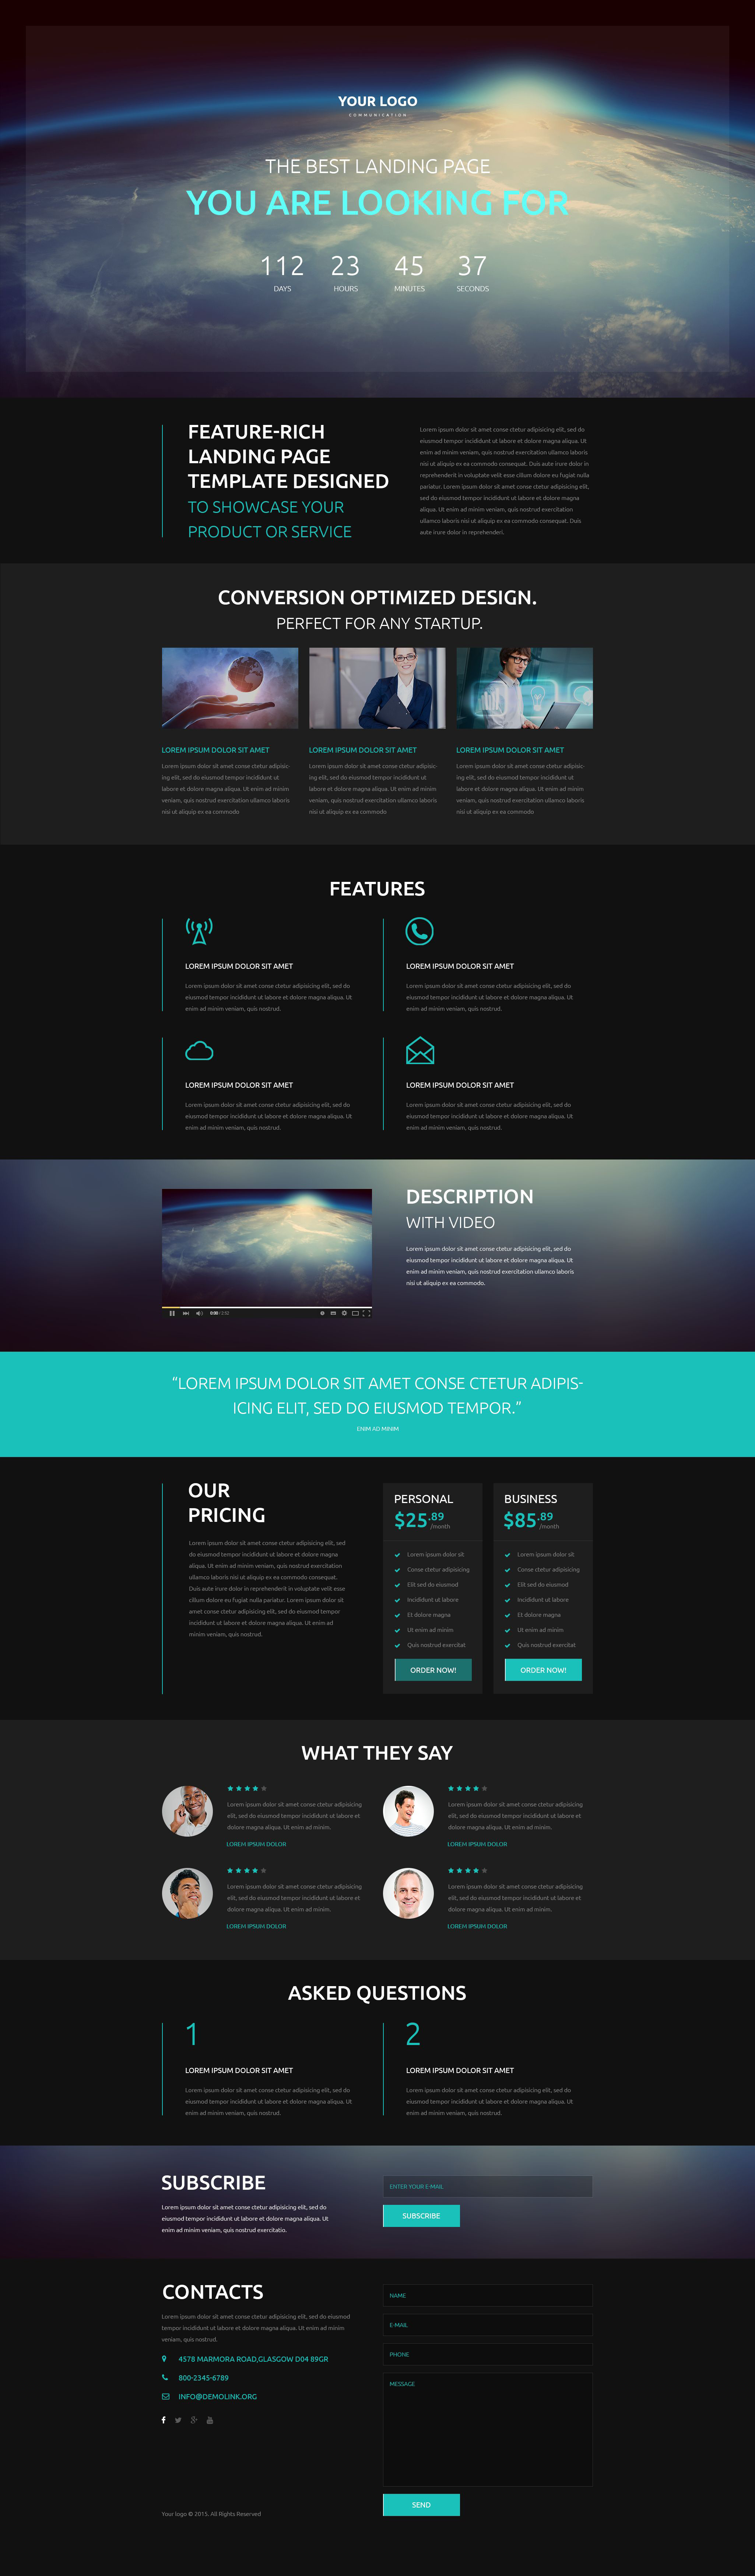 Communications Responsive Landing Page Template - screenshot